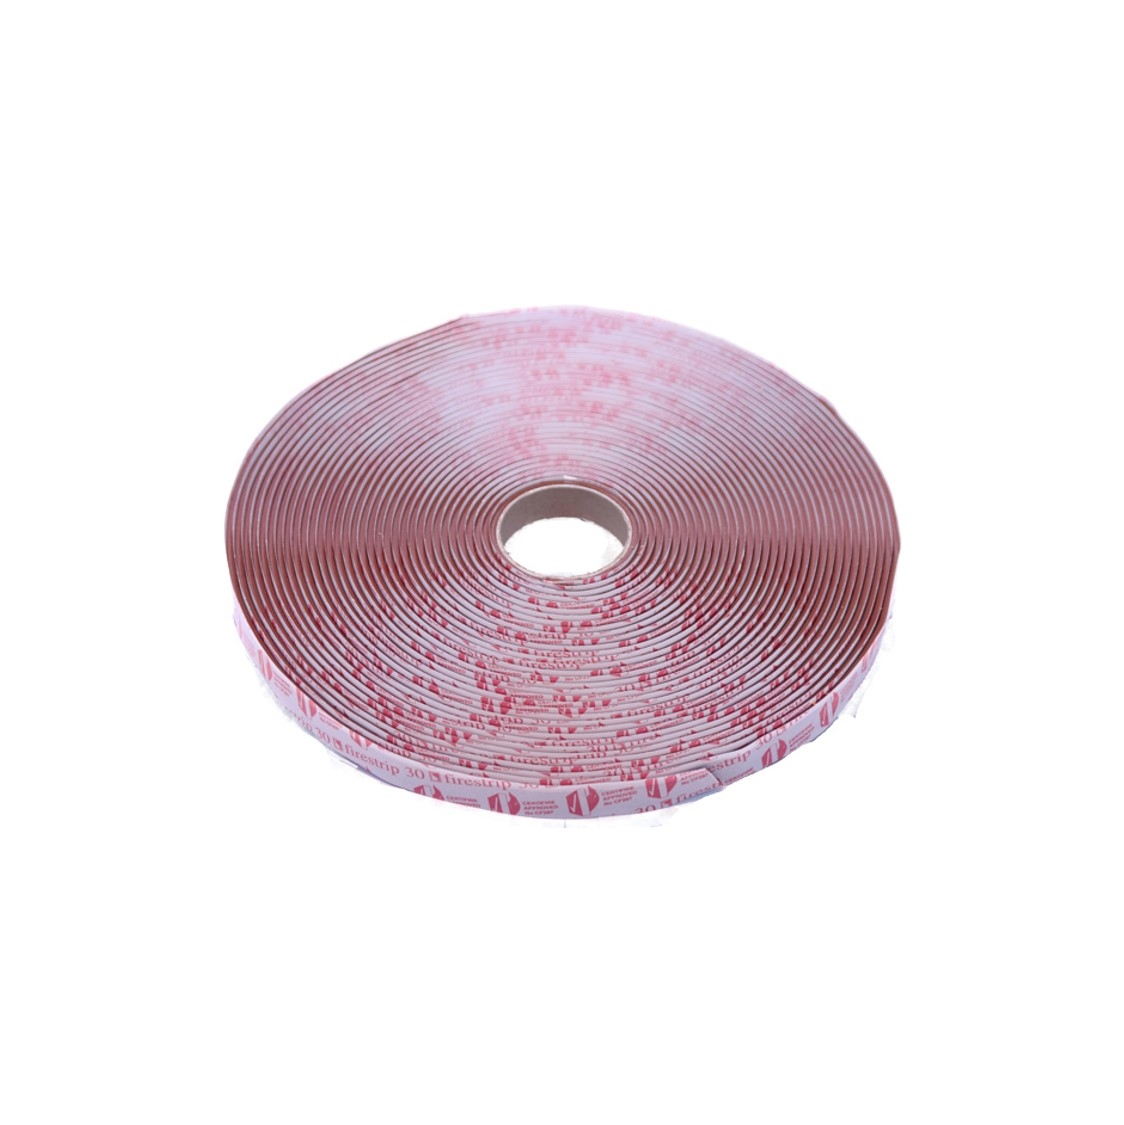 Flexistrip Firestrip 30 15x1.5 Mahog Glazing Strip (30m Reel)